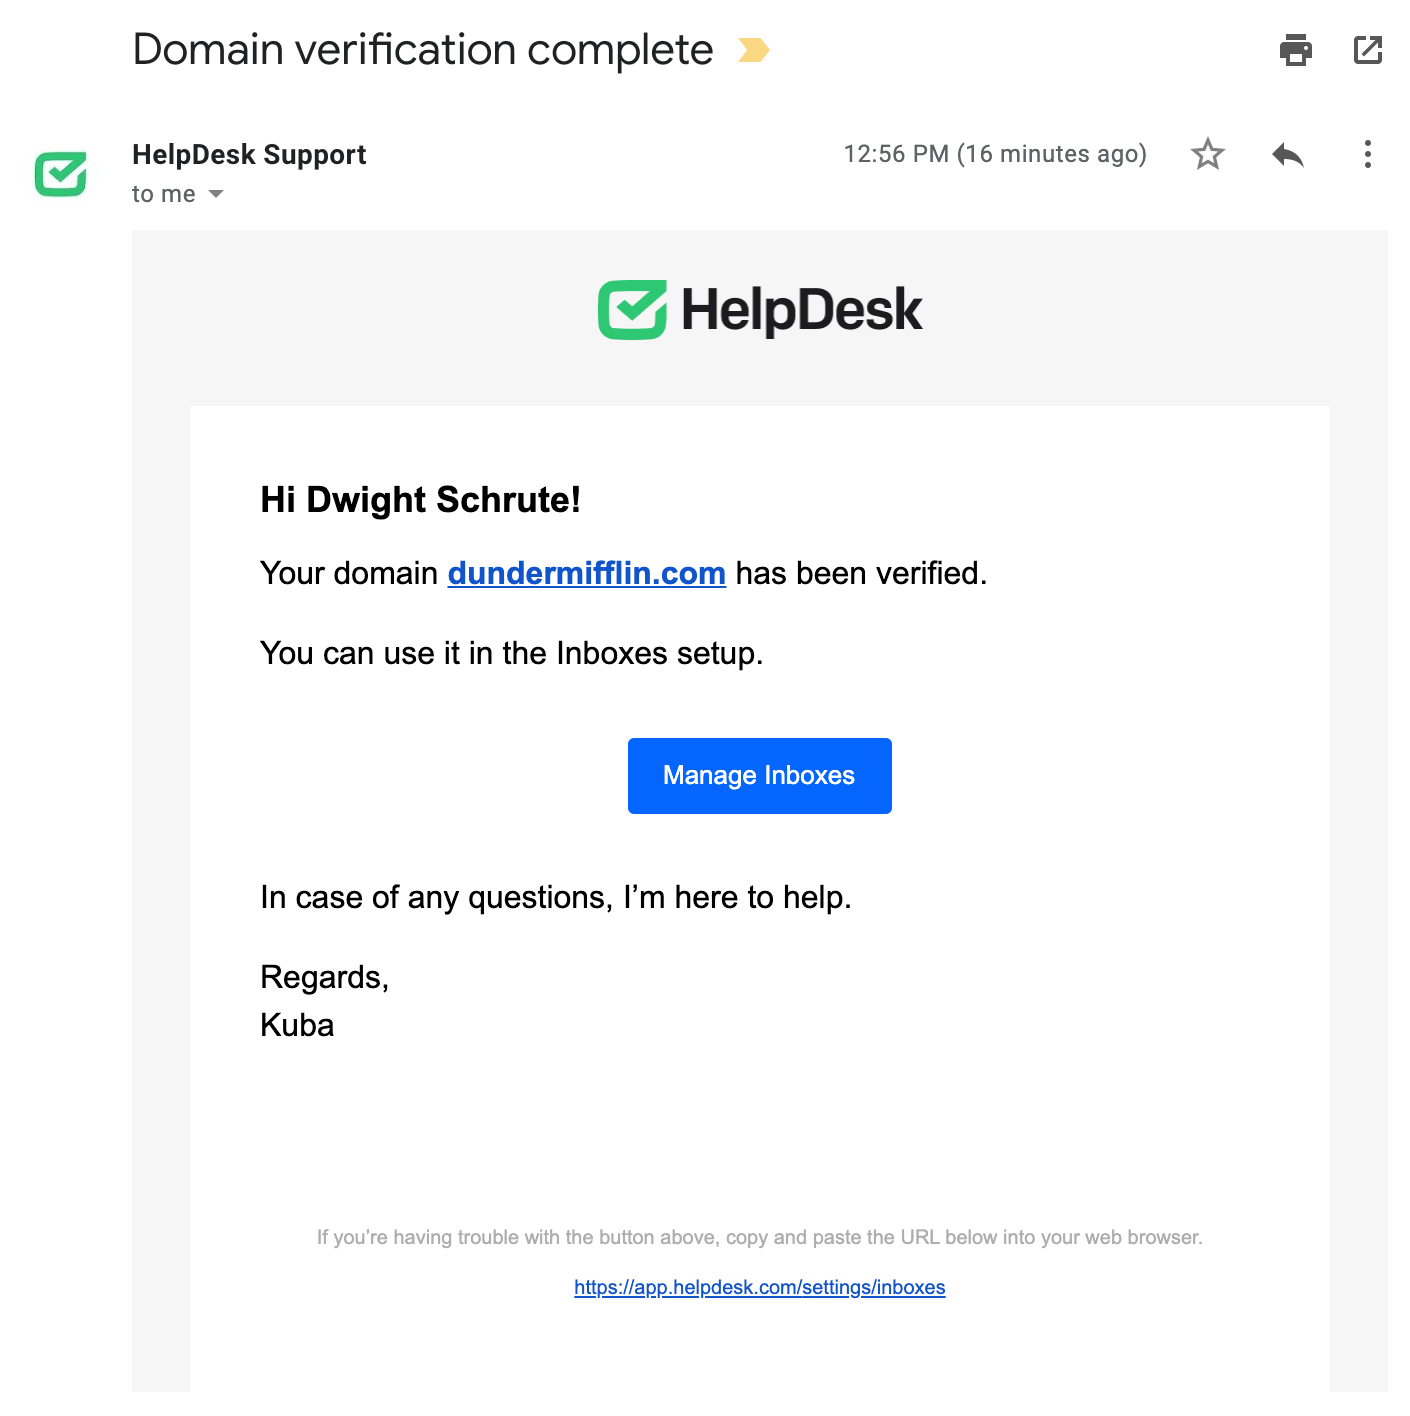 Email confirmation of verifying the domain.